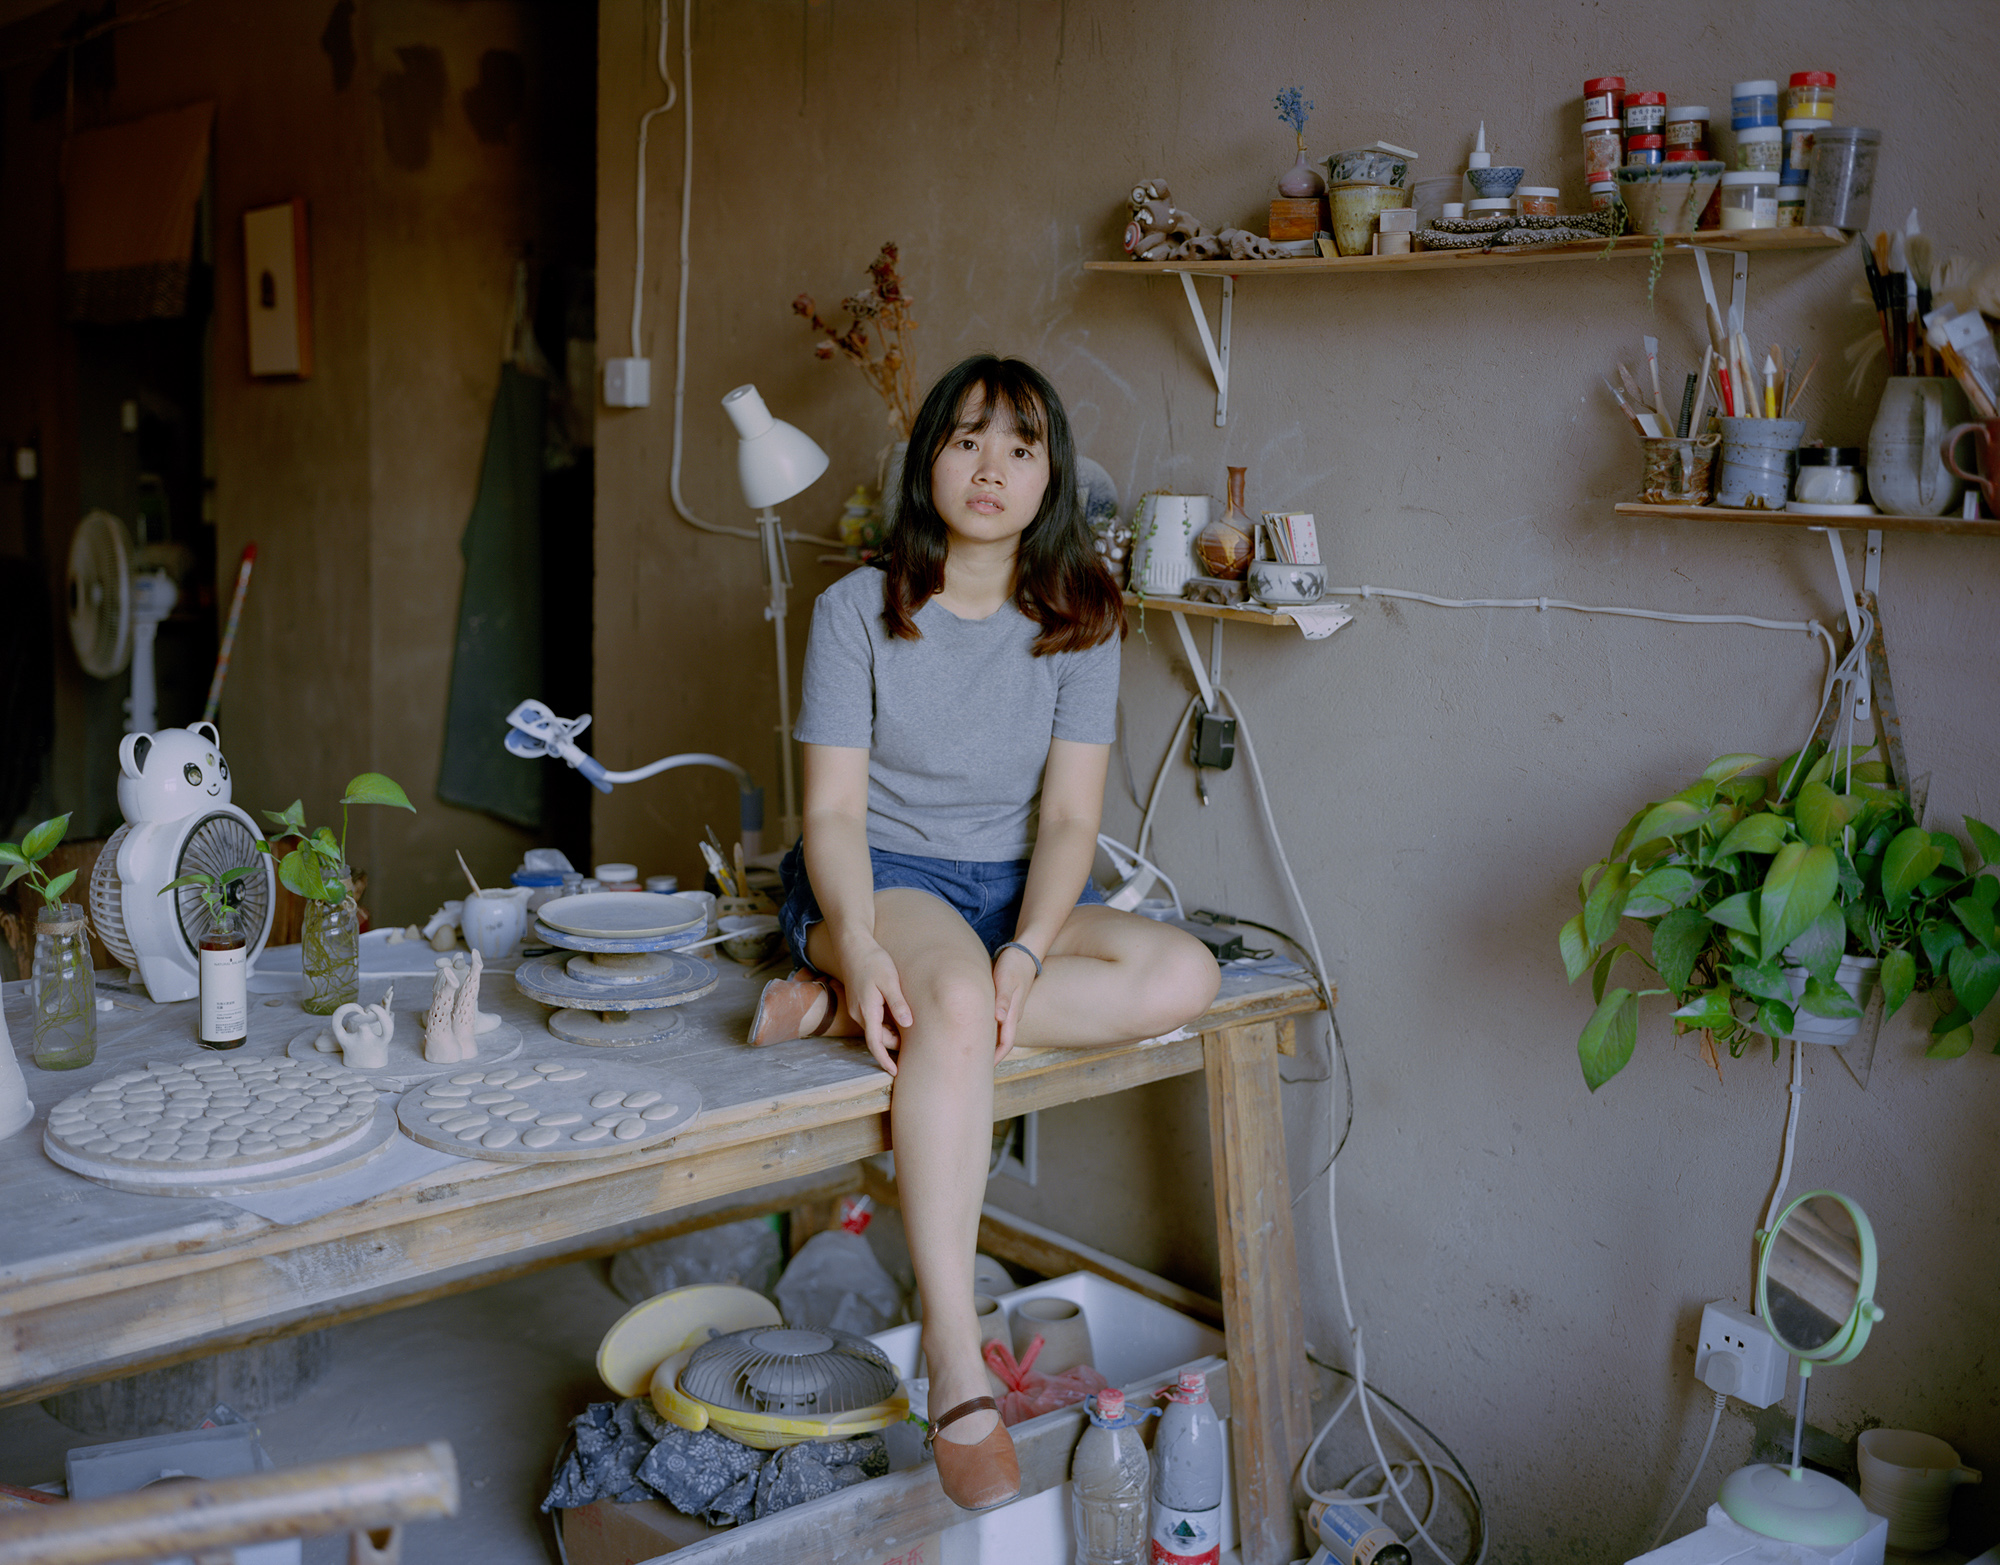 Liang Zhuanshan, a 24-year-old porcelain artist, sits in her studio in Jingdezhen. Despite the clay shortage, Jingdezhen has managed to rejuvenate its art and education industry. Studios and workshops have opened one after another in recent years, and have attracted many artisans.